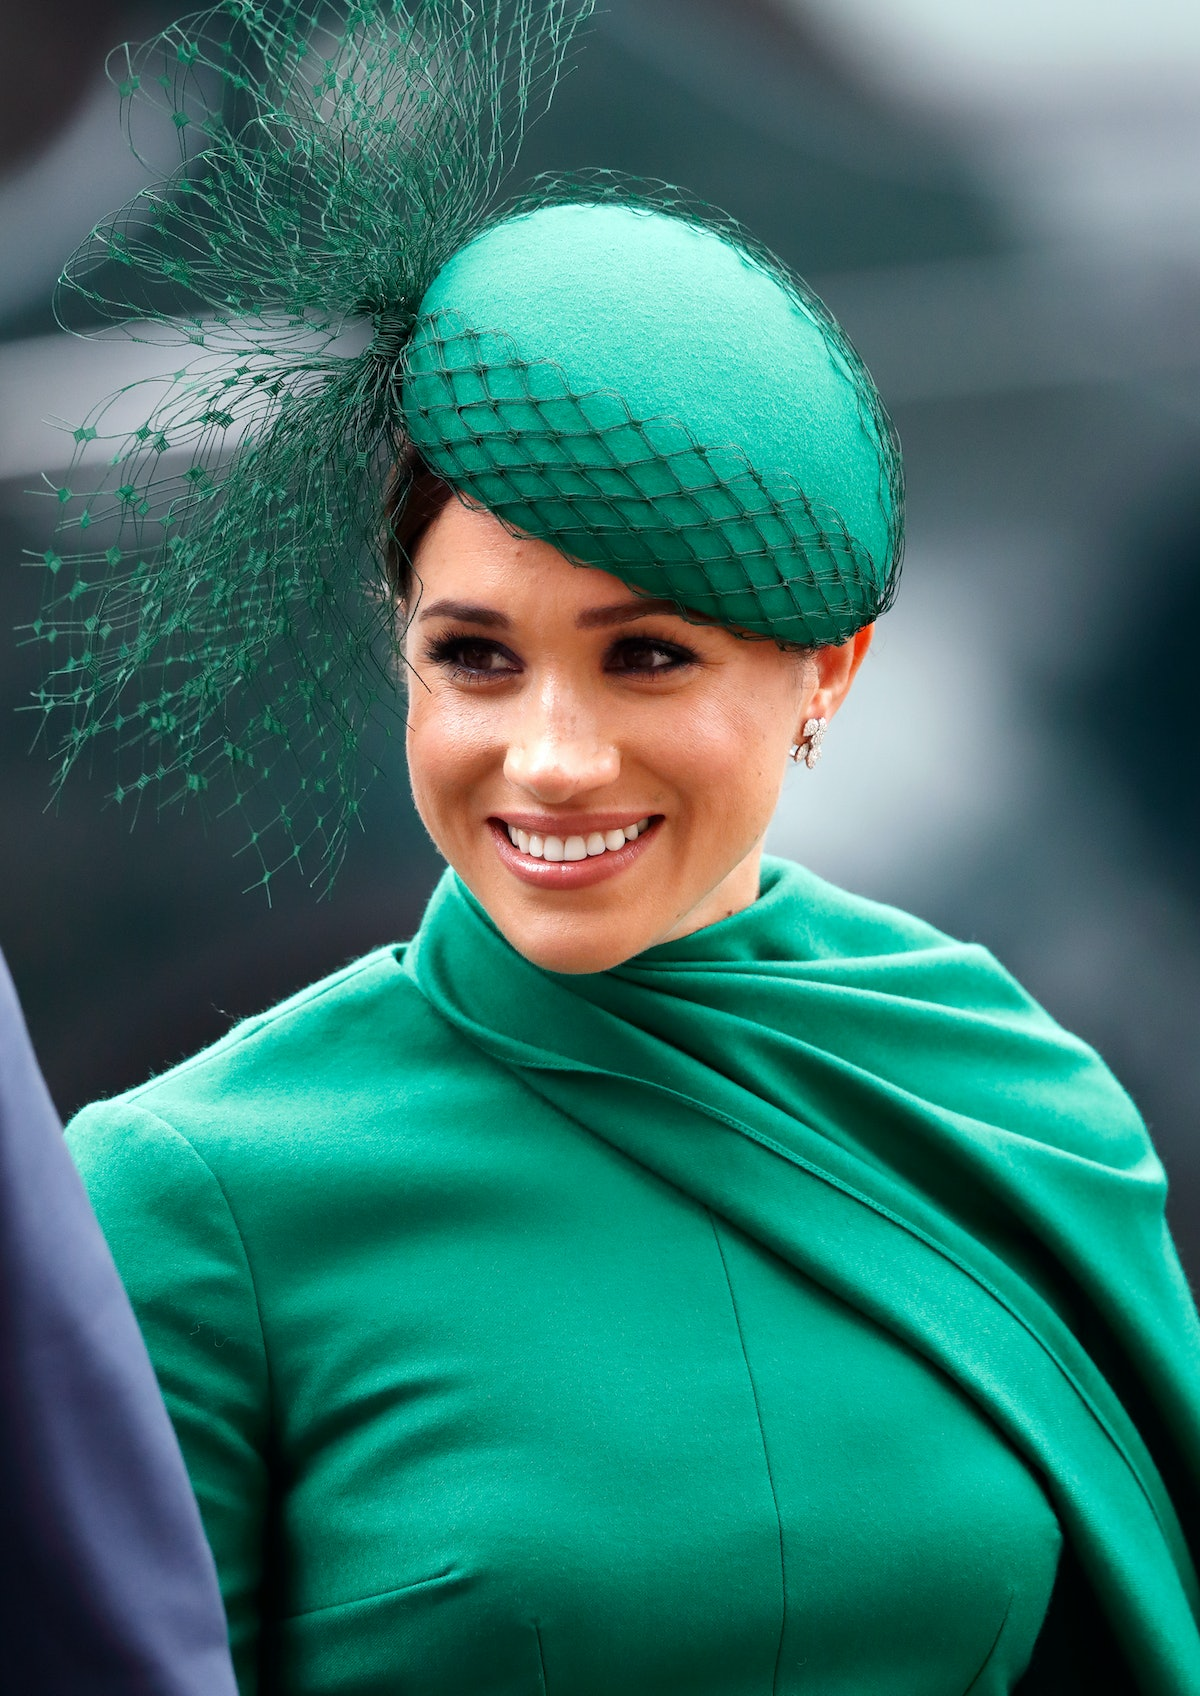 Meghan Markle attends a royal engagement.